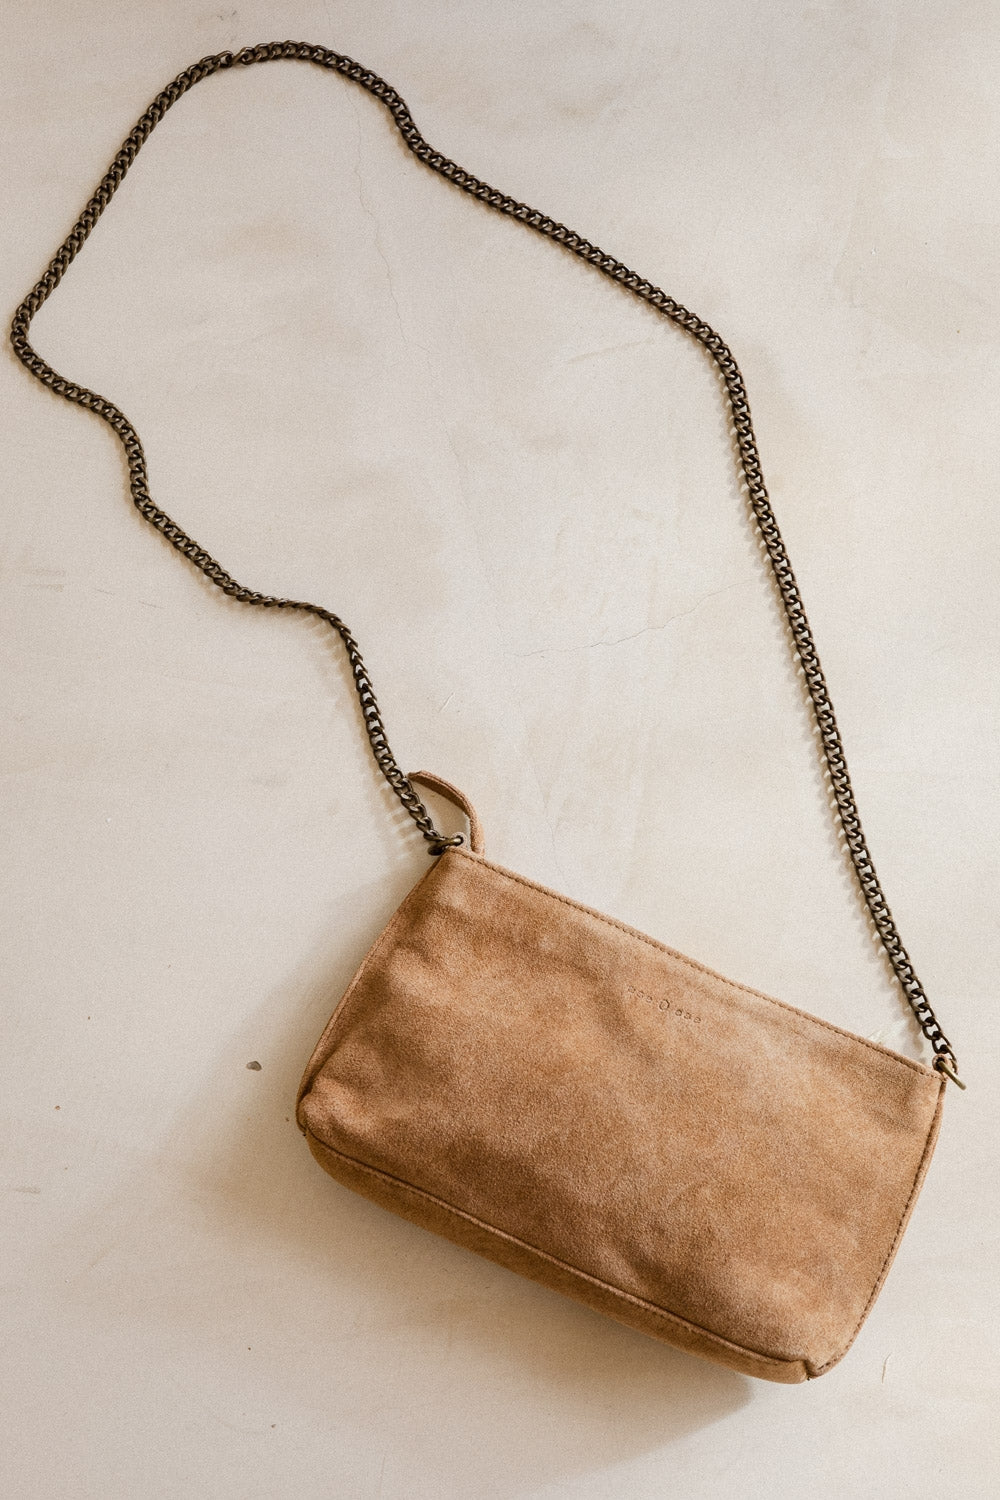 ese O ese Mini suede handbag with chain strap in Soft Tan